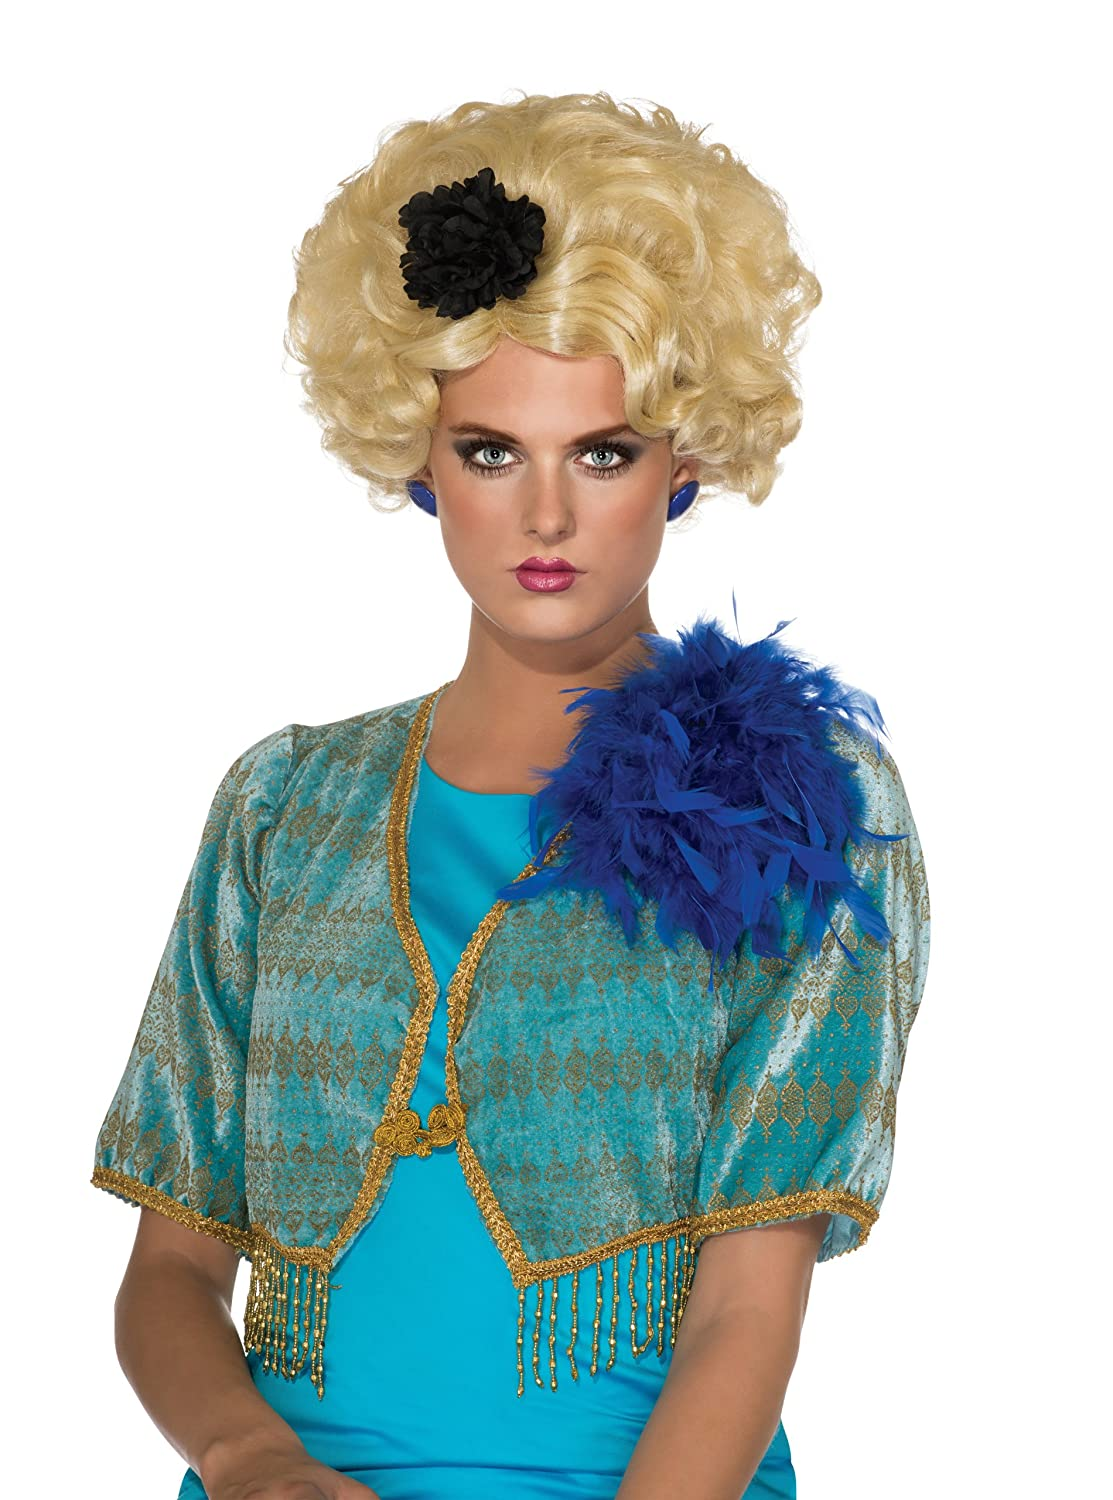 Rubies Costume Adult Chaperone Wig Blonde One Size Rubies Costume Co (Canada) 52730